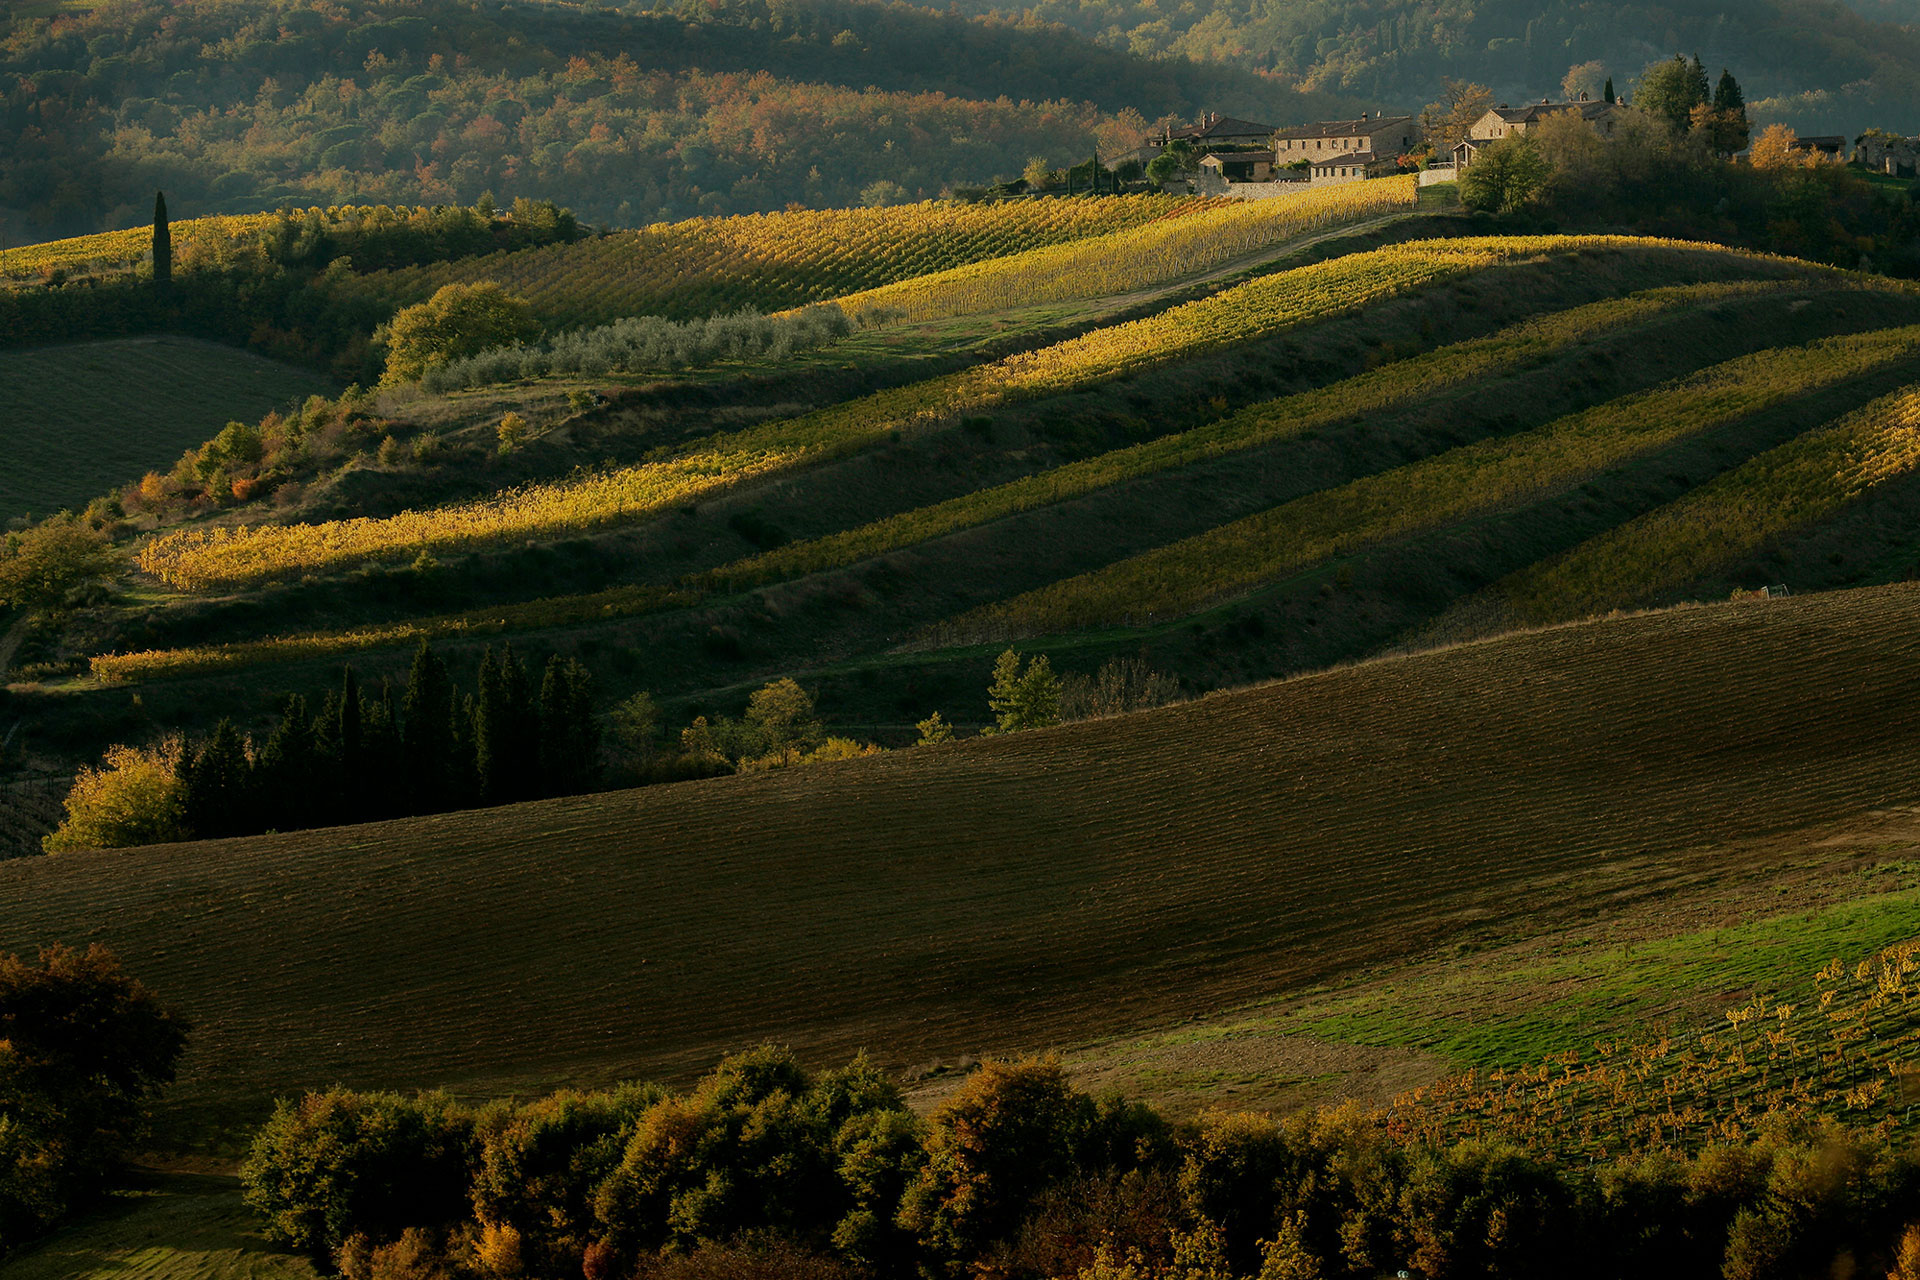 Eastern Part of Chianti Classico